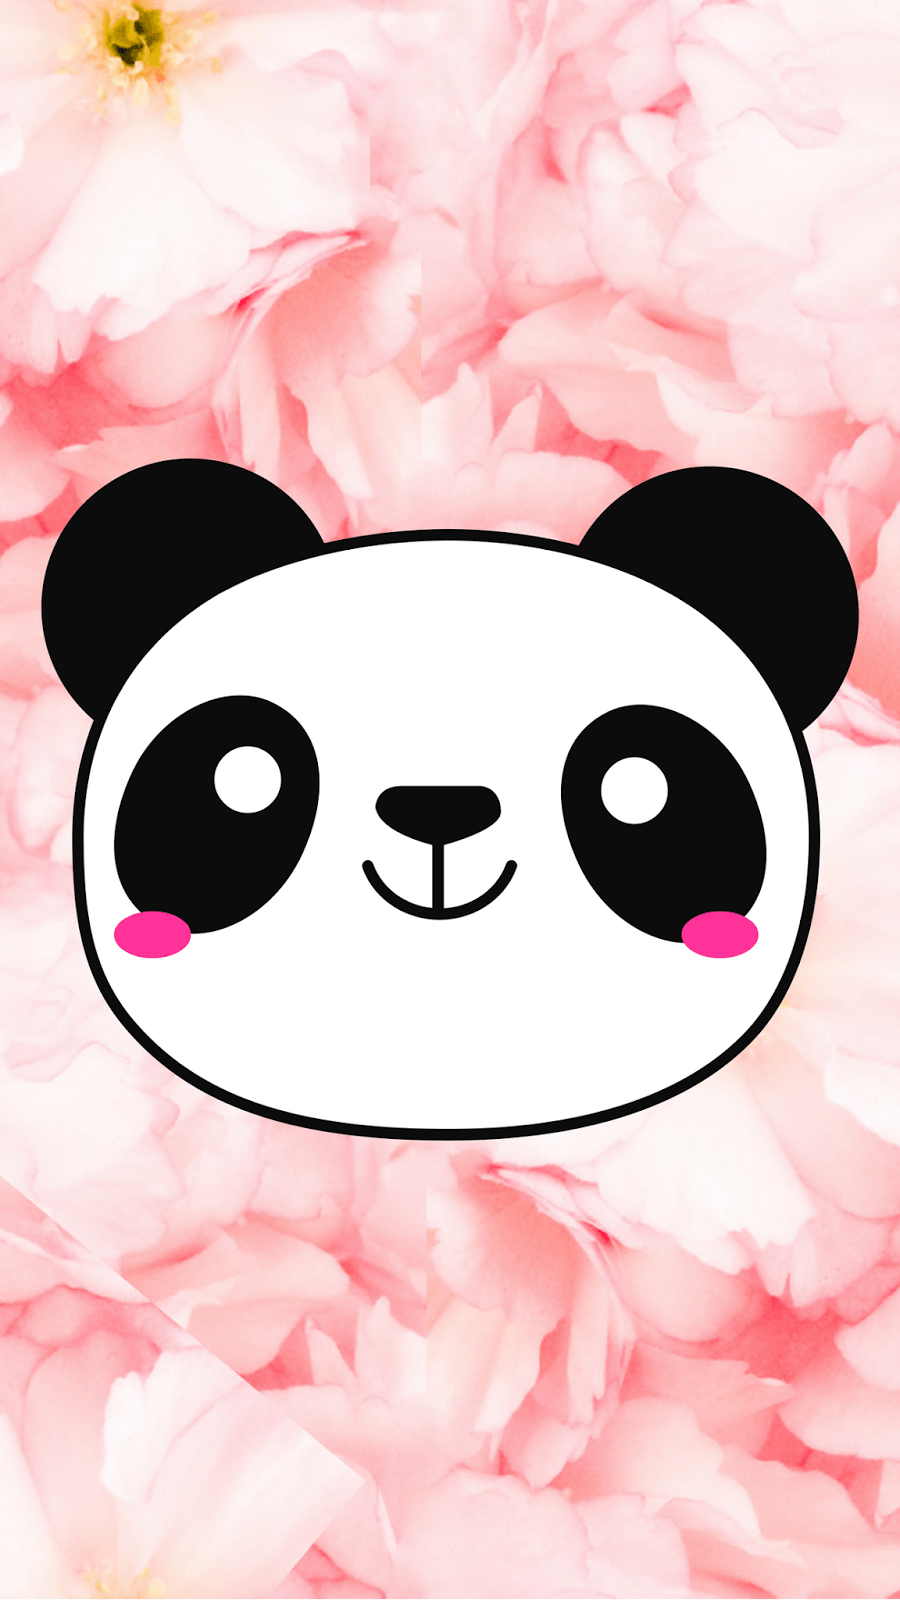 Cool panda wallpapers.